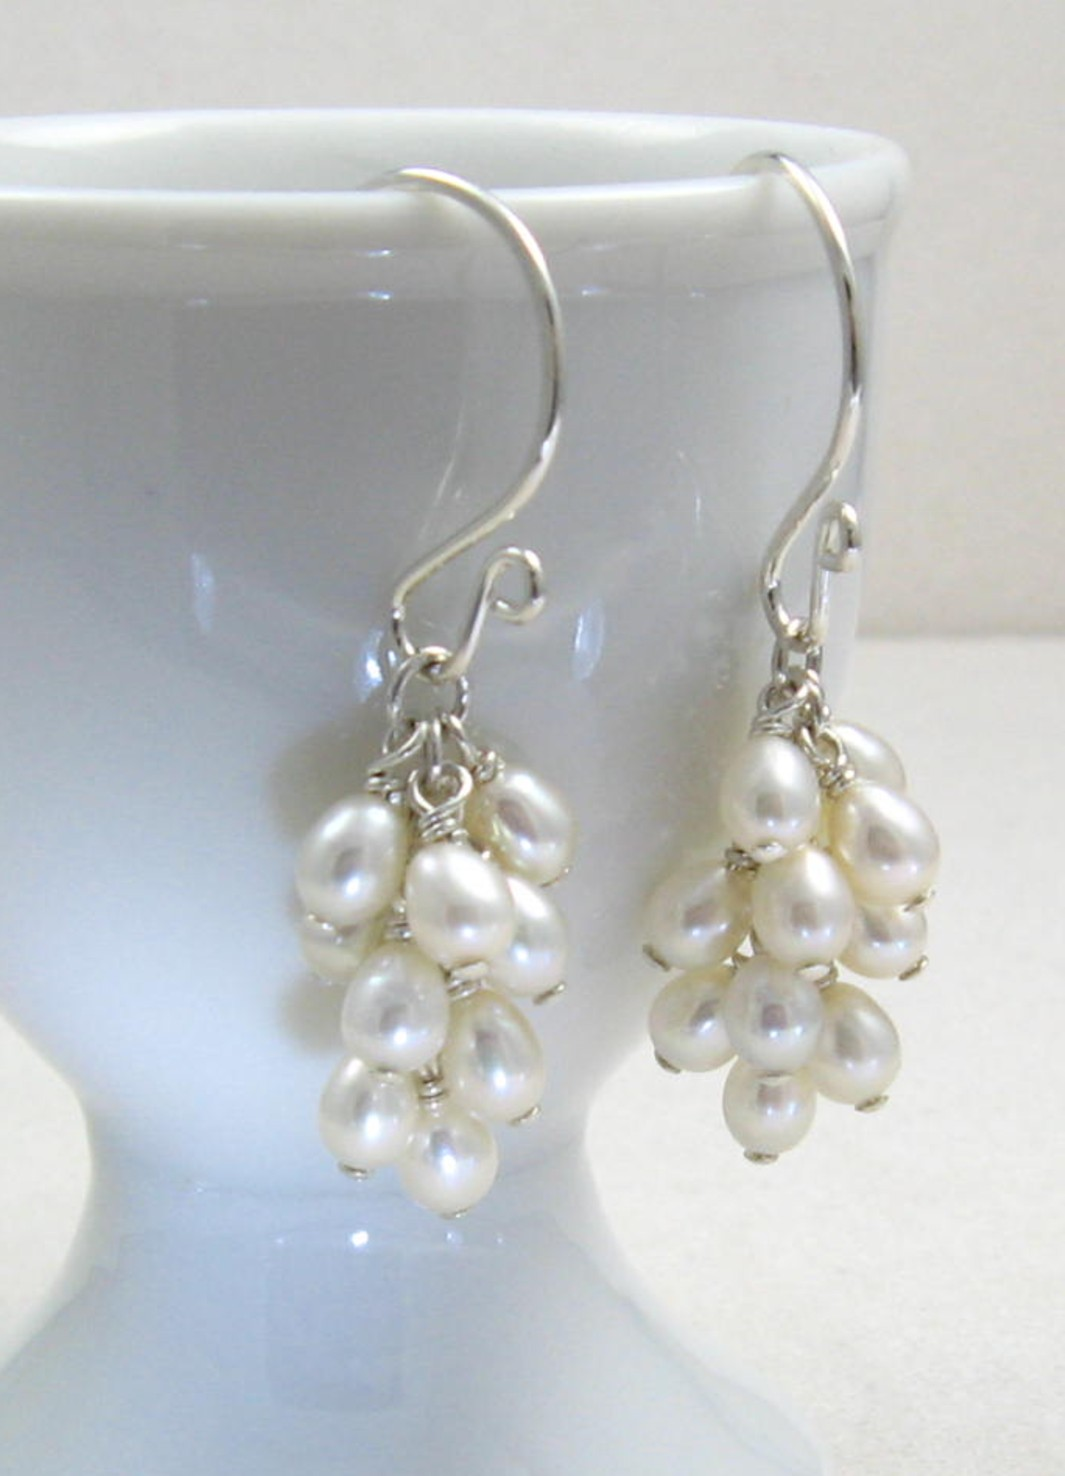 Beautiful White Smooth Luminous Pearls Hand Wred With Sterling Silver Hang In A Cer From Handmade Argentium Earwires Freshwater